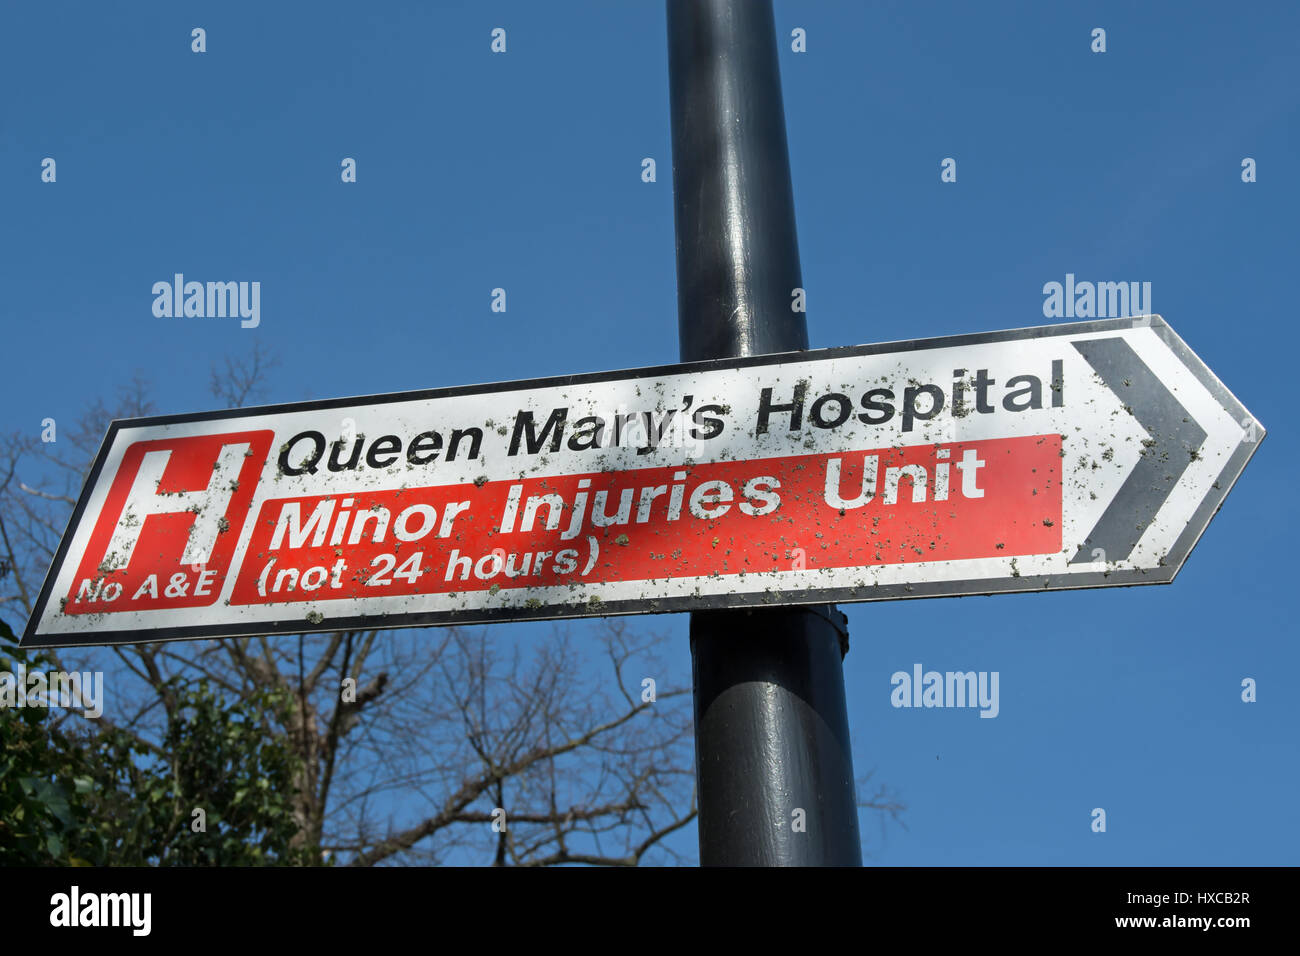 minor injuries unit sign outside queen mary's hospital, roehampton, southwest london, england - Stock Image